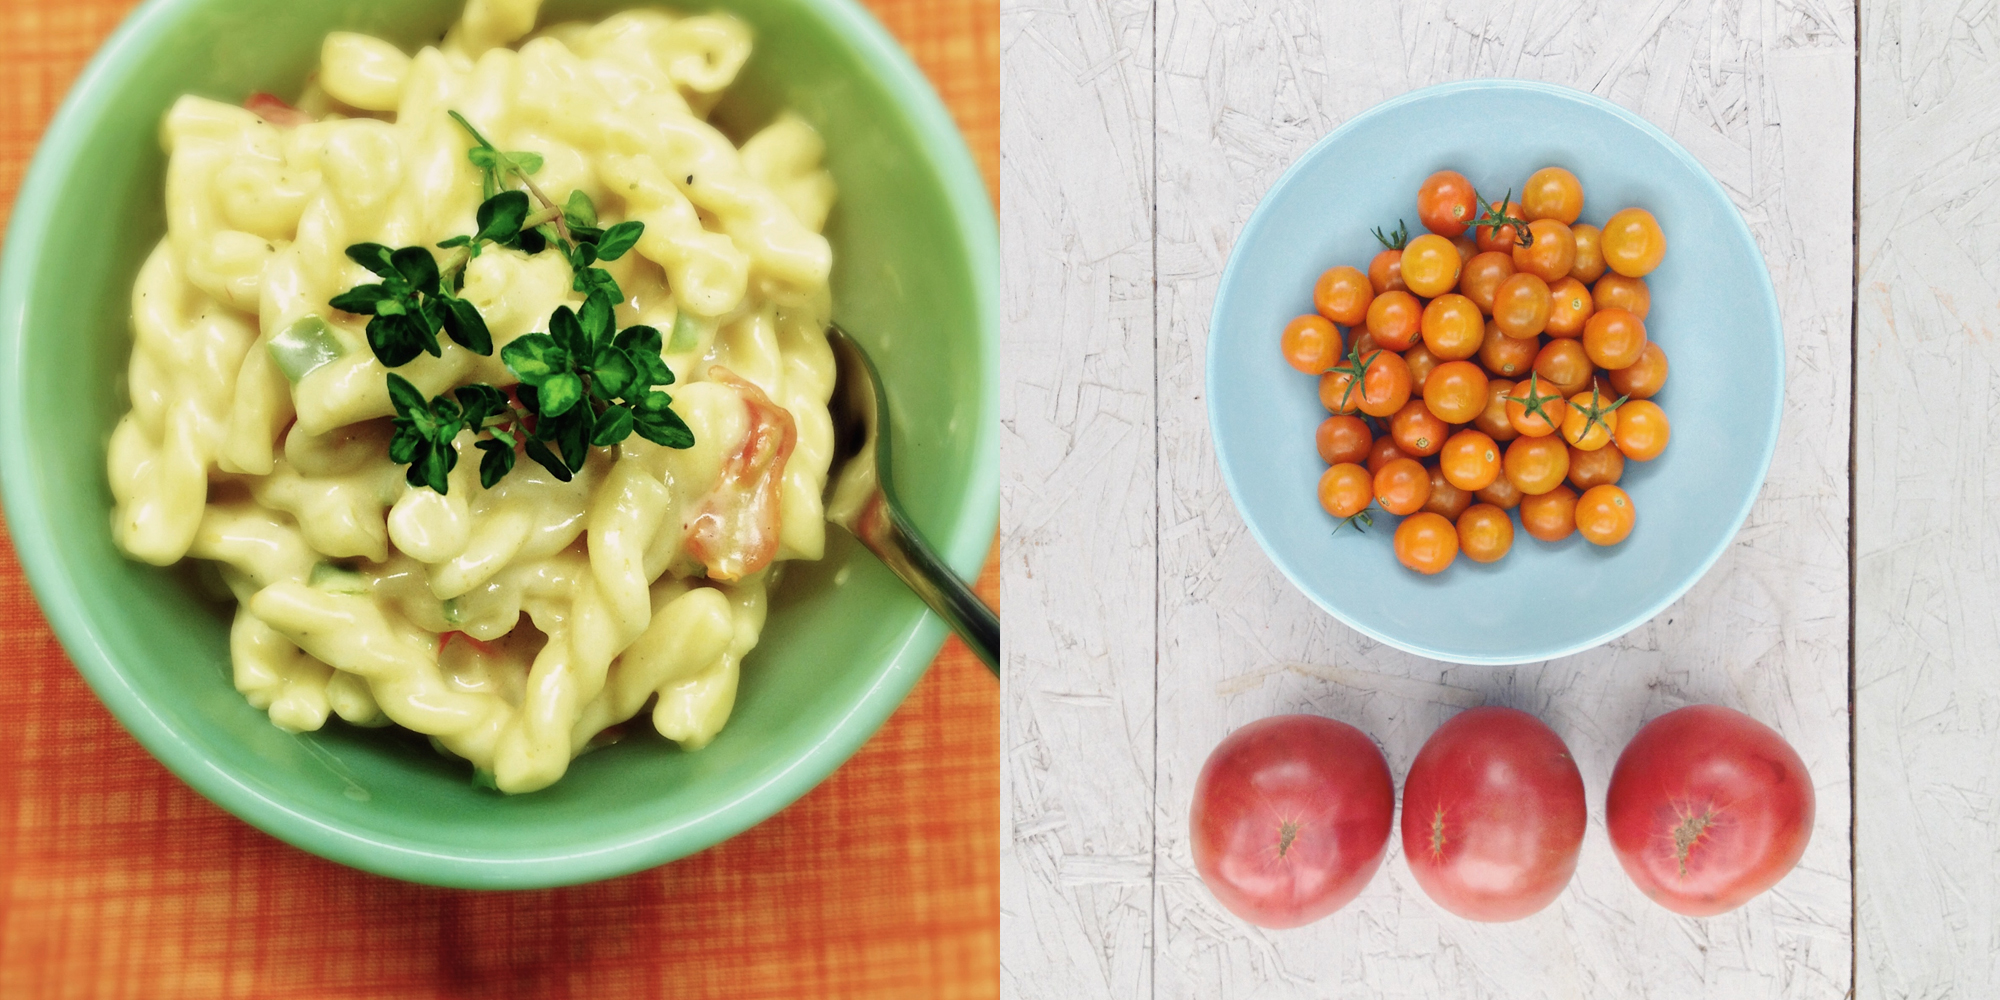 tomatoes and mac cheese diptych.jpg